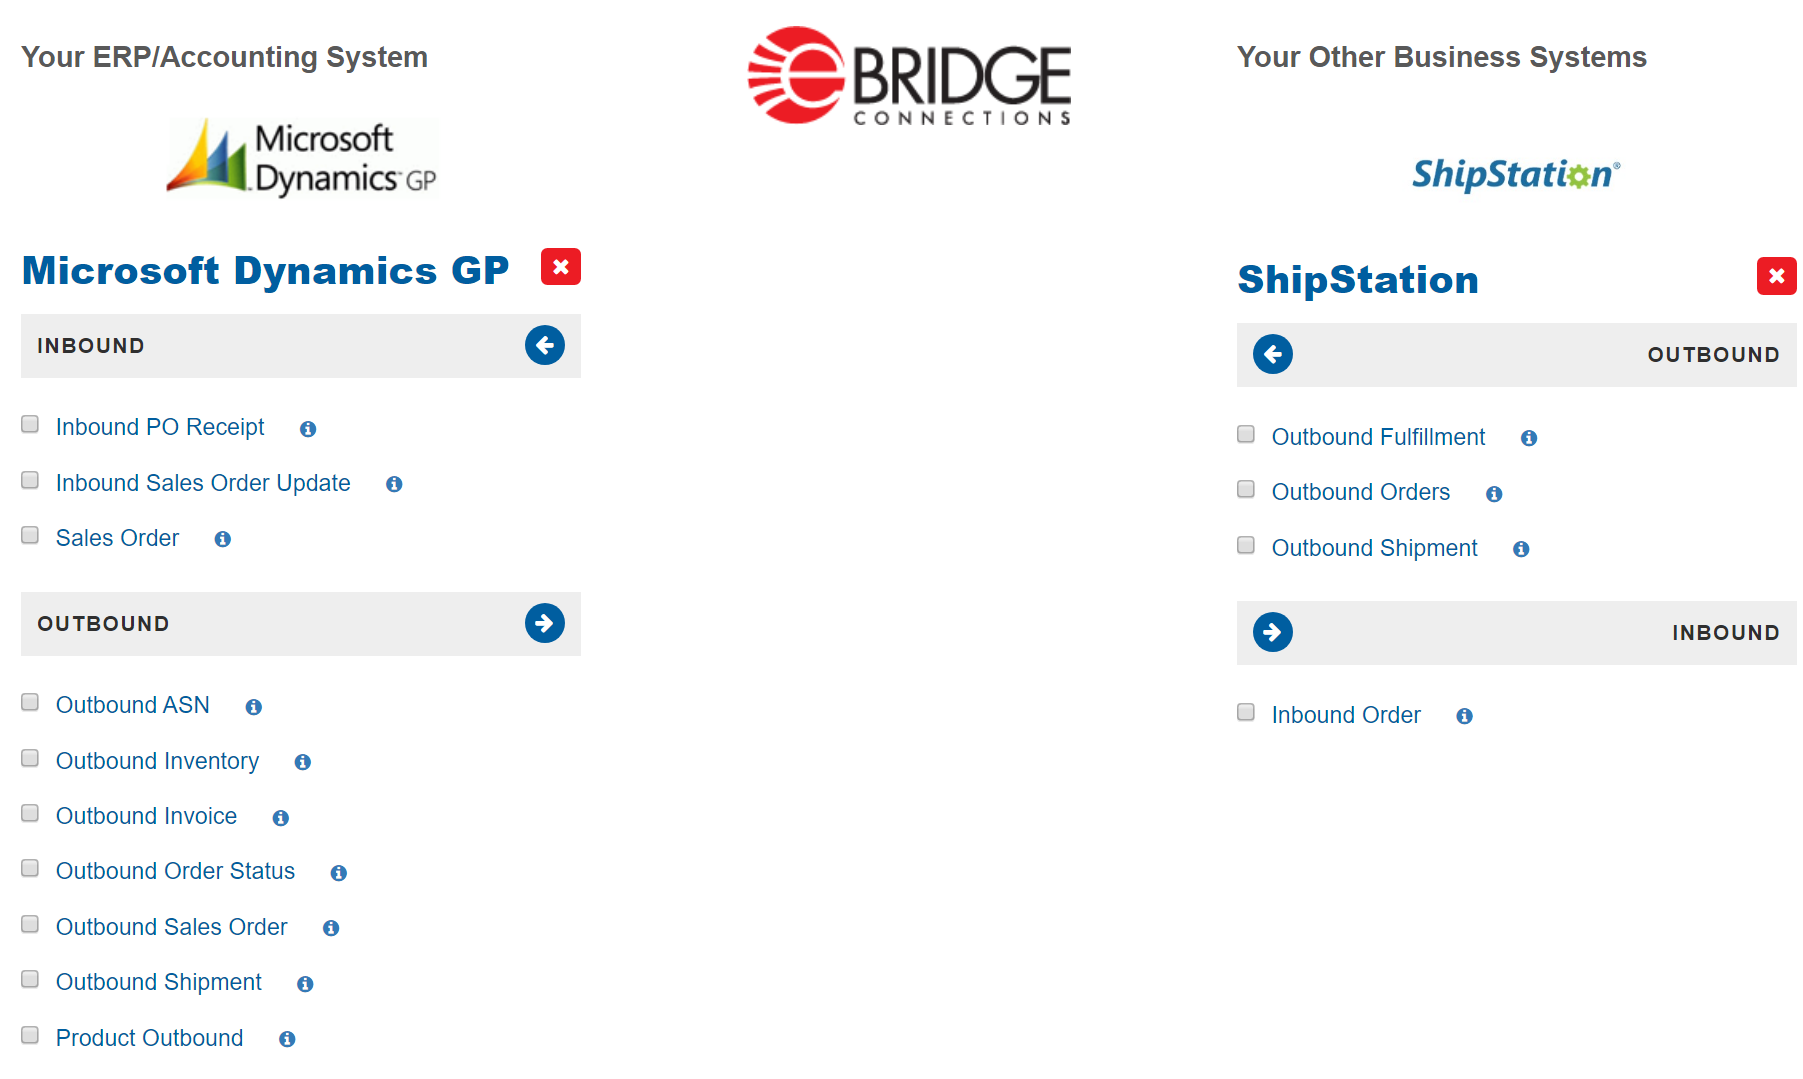 Microsoft-Dynamics-GP-and-Shipstation-ERP-integration-eBridge.PNG